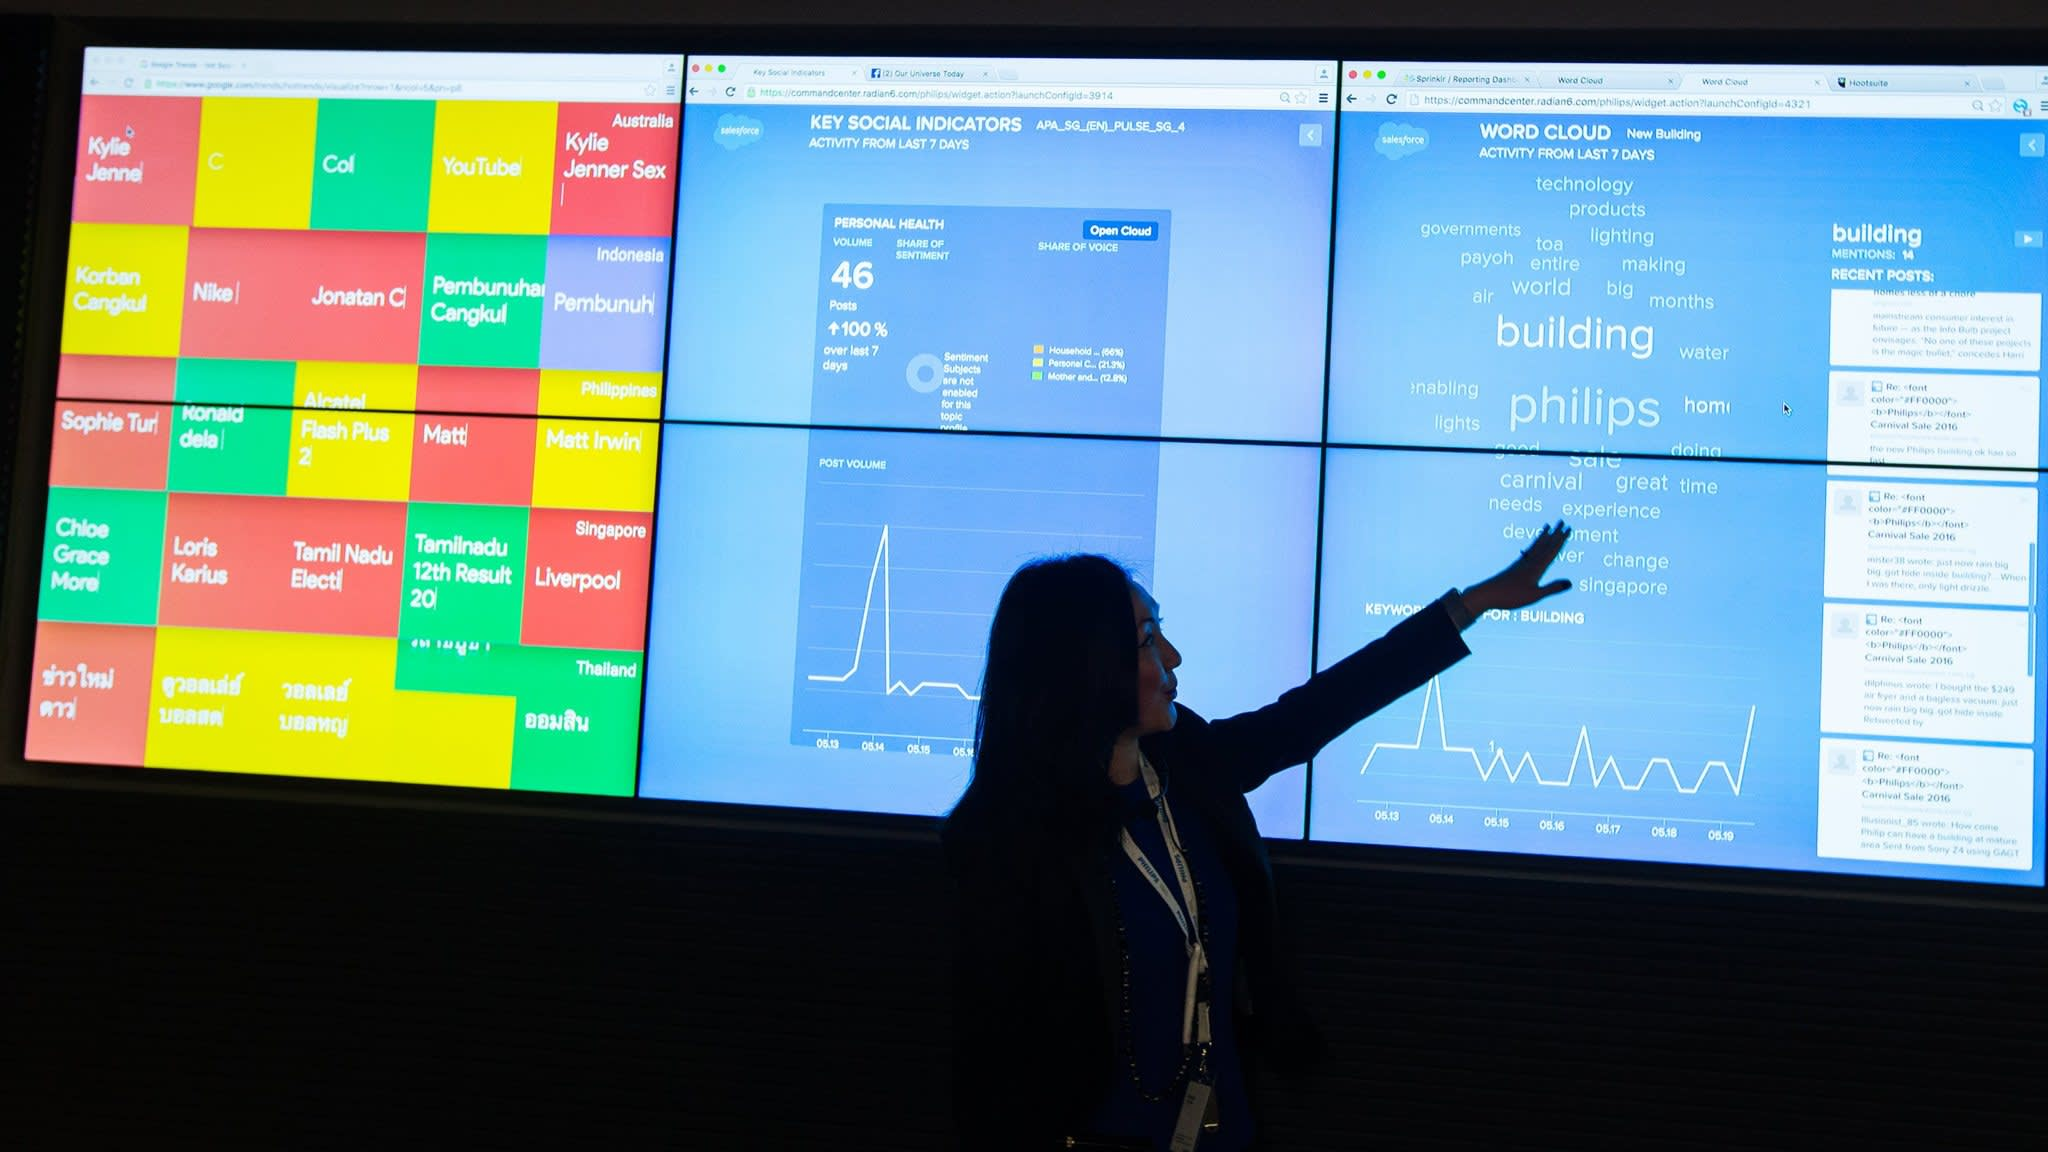 Philips lights on AI to target growth in healthcare | Financial Times